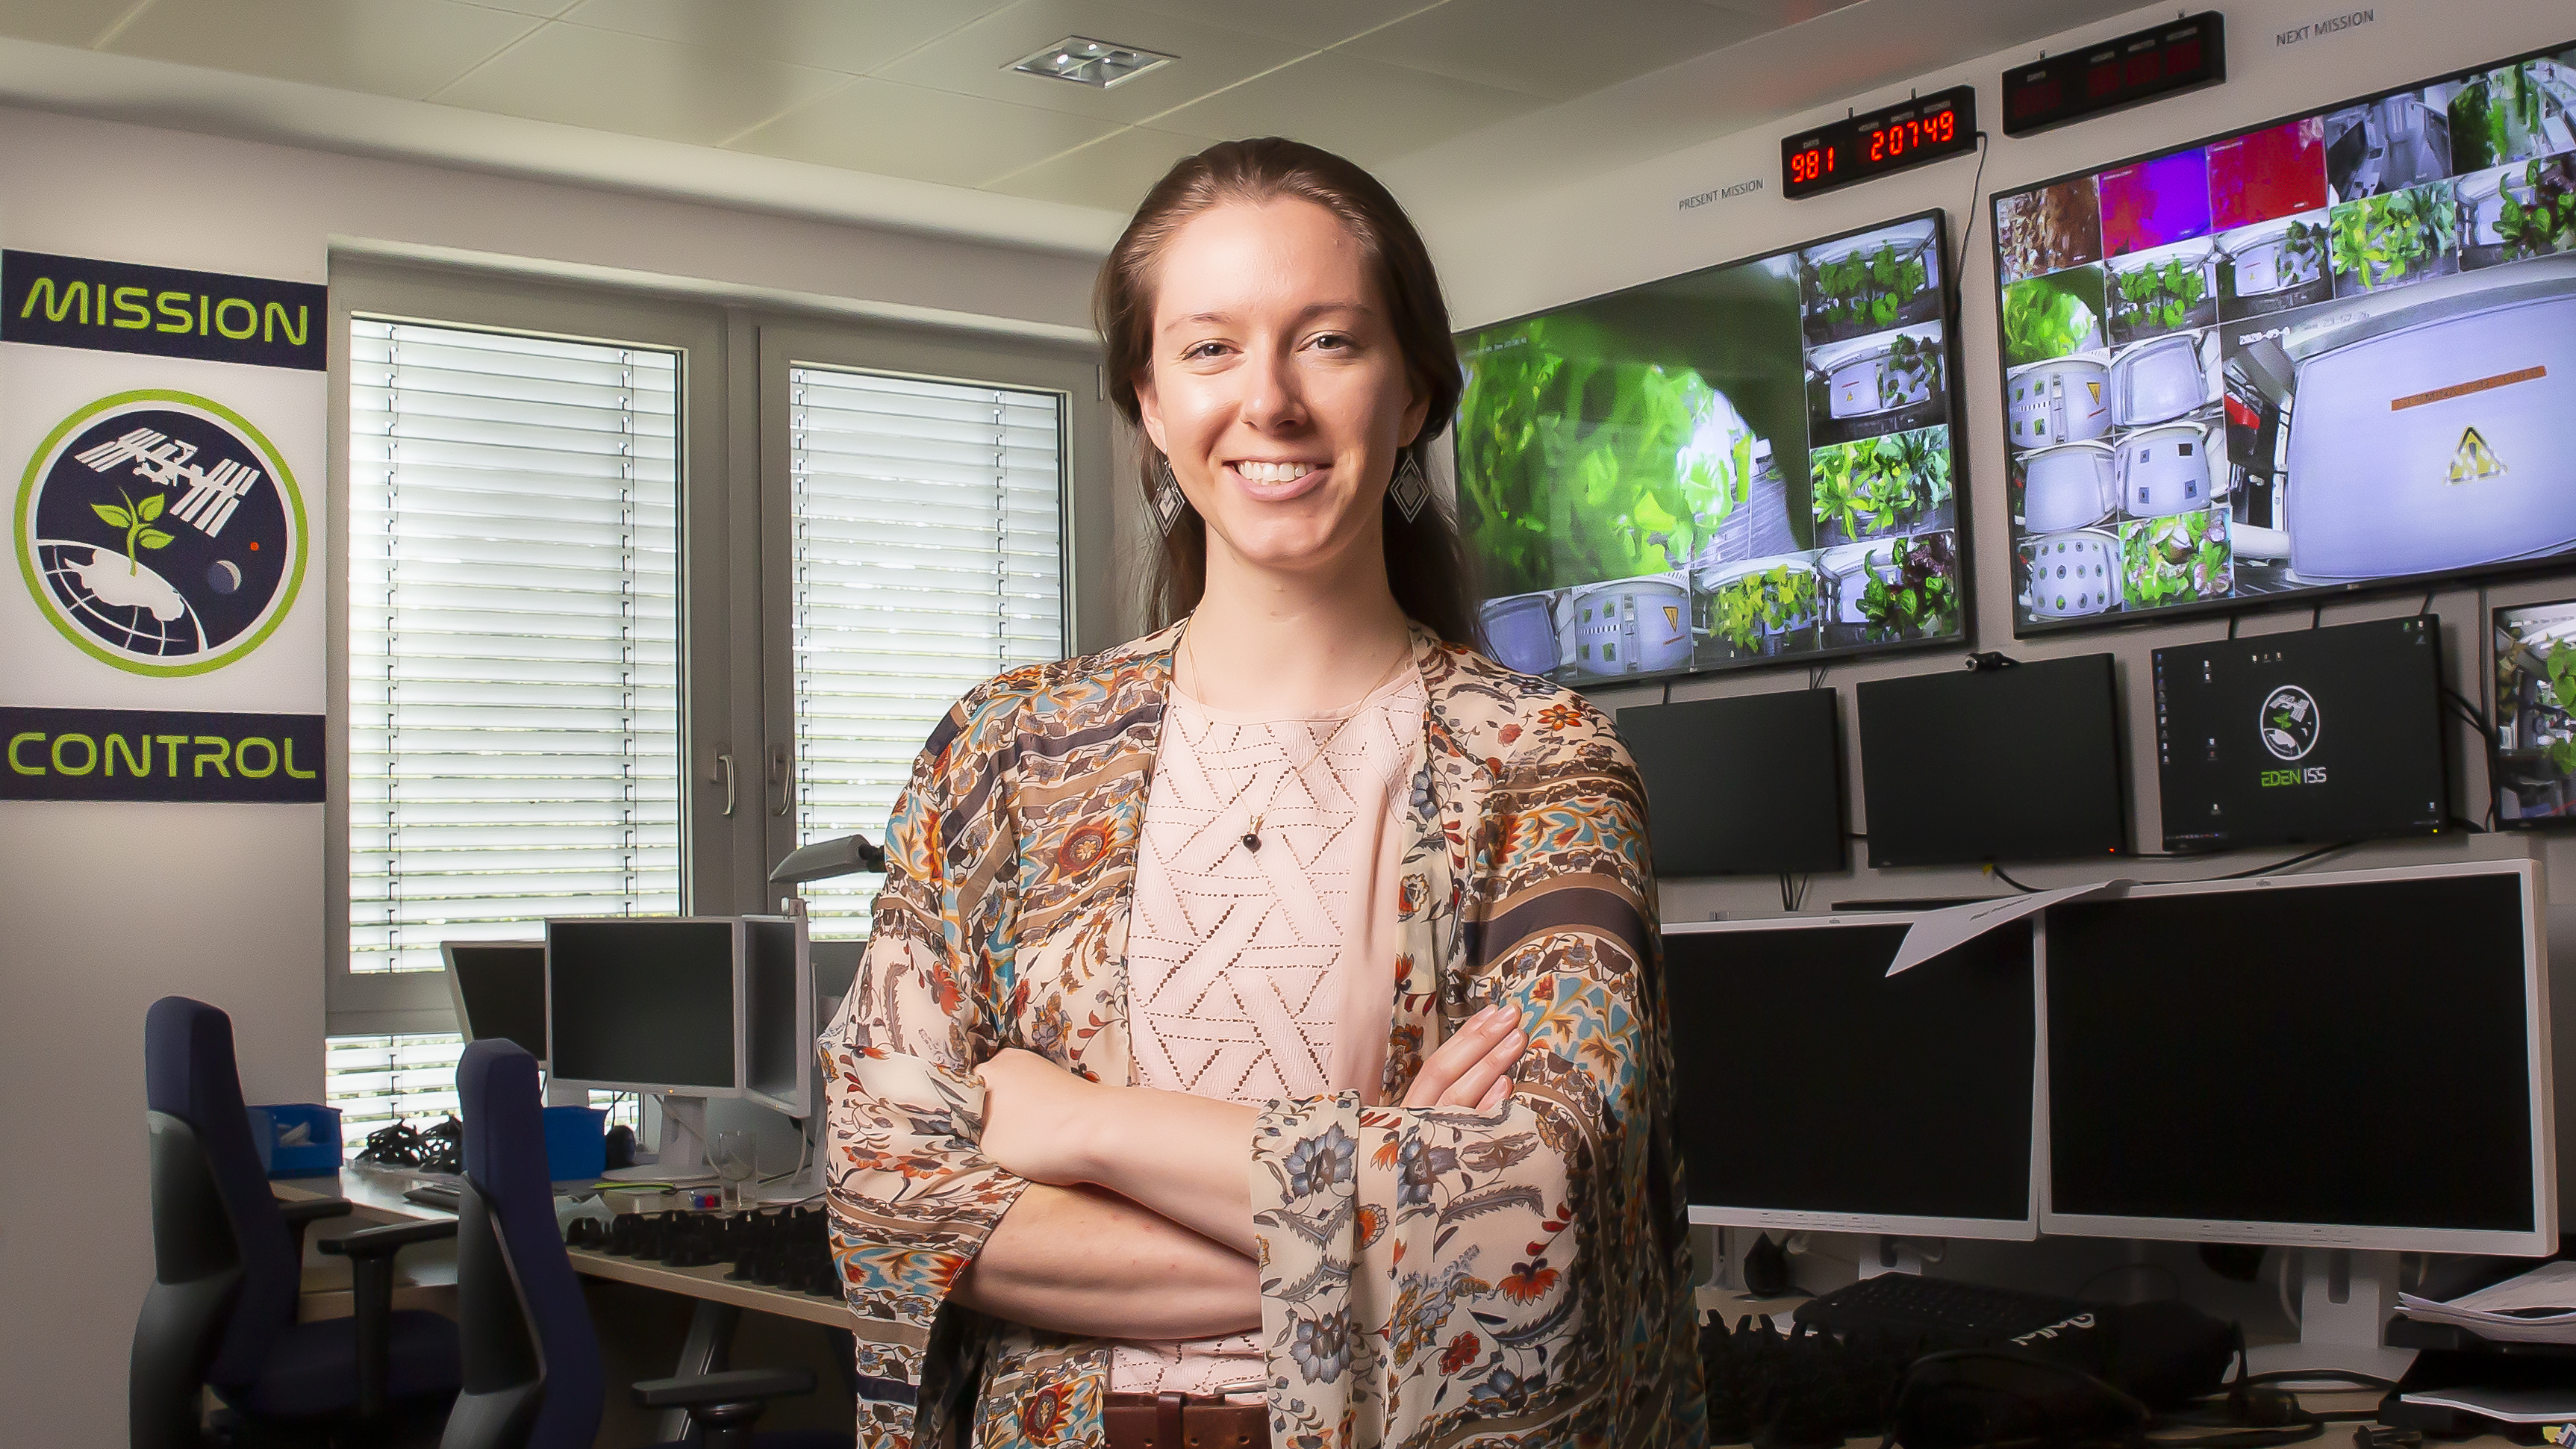 Jess Marie Bunchek - NASA Plant Scientist, Credit Andreas Caspari